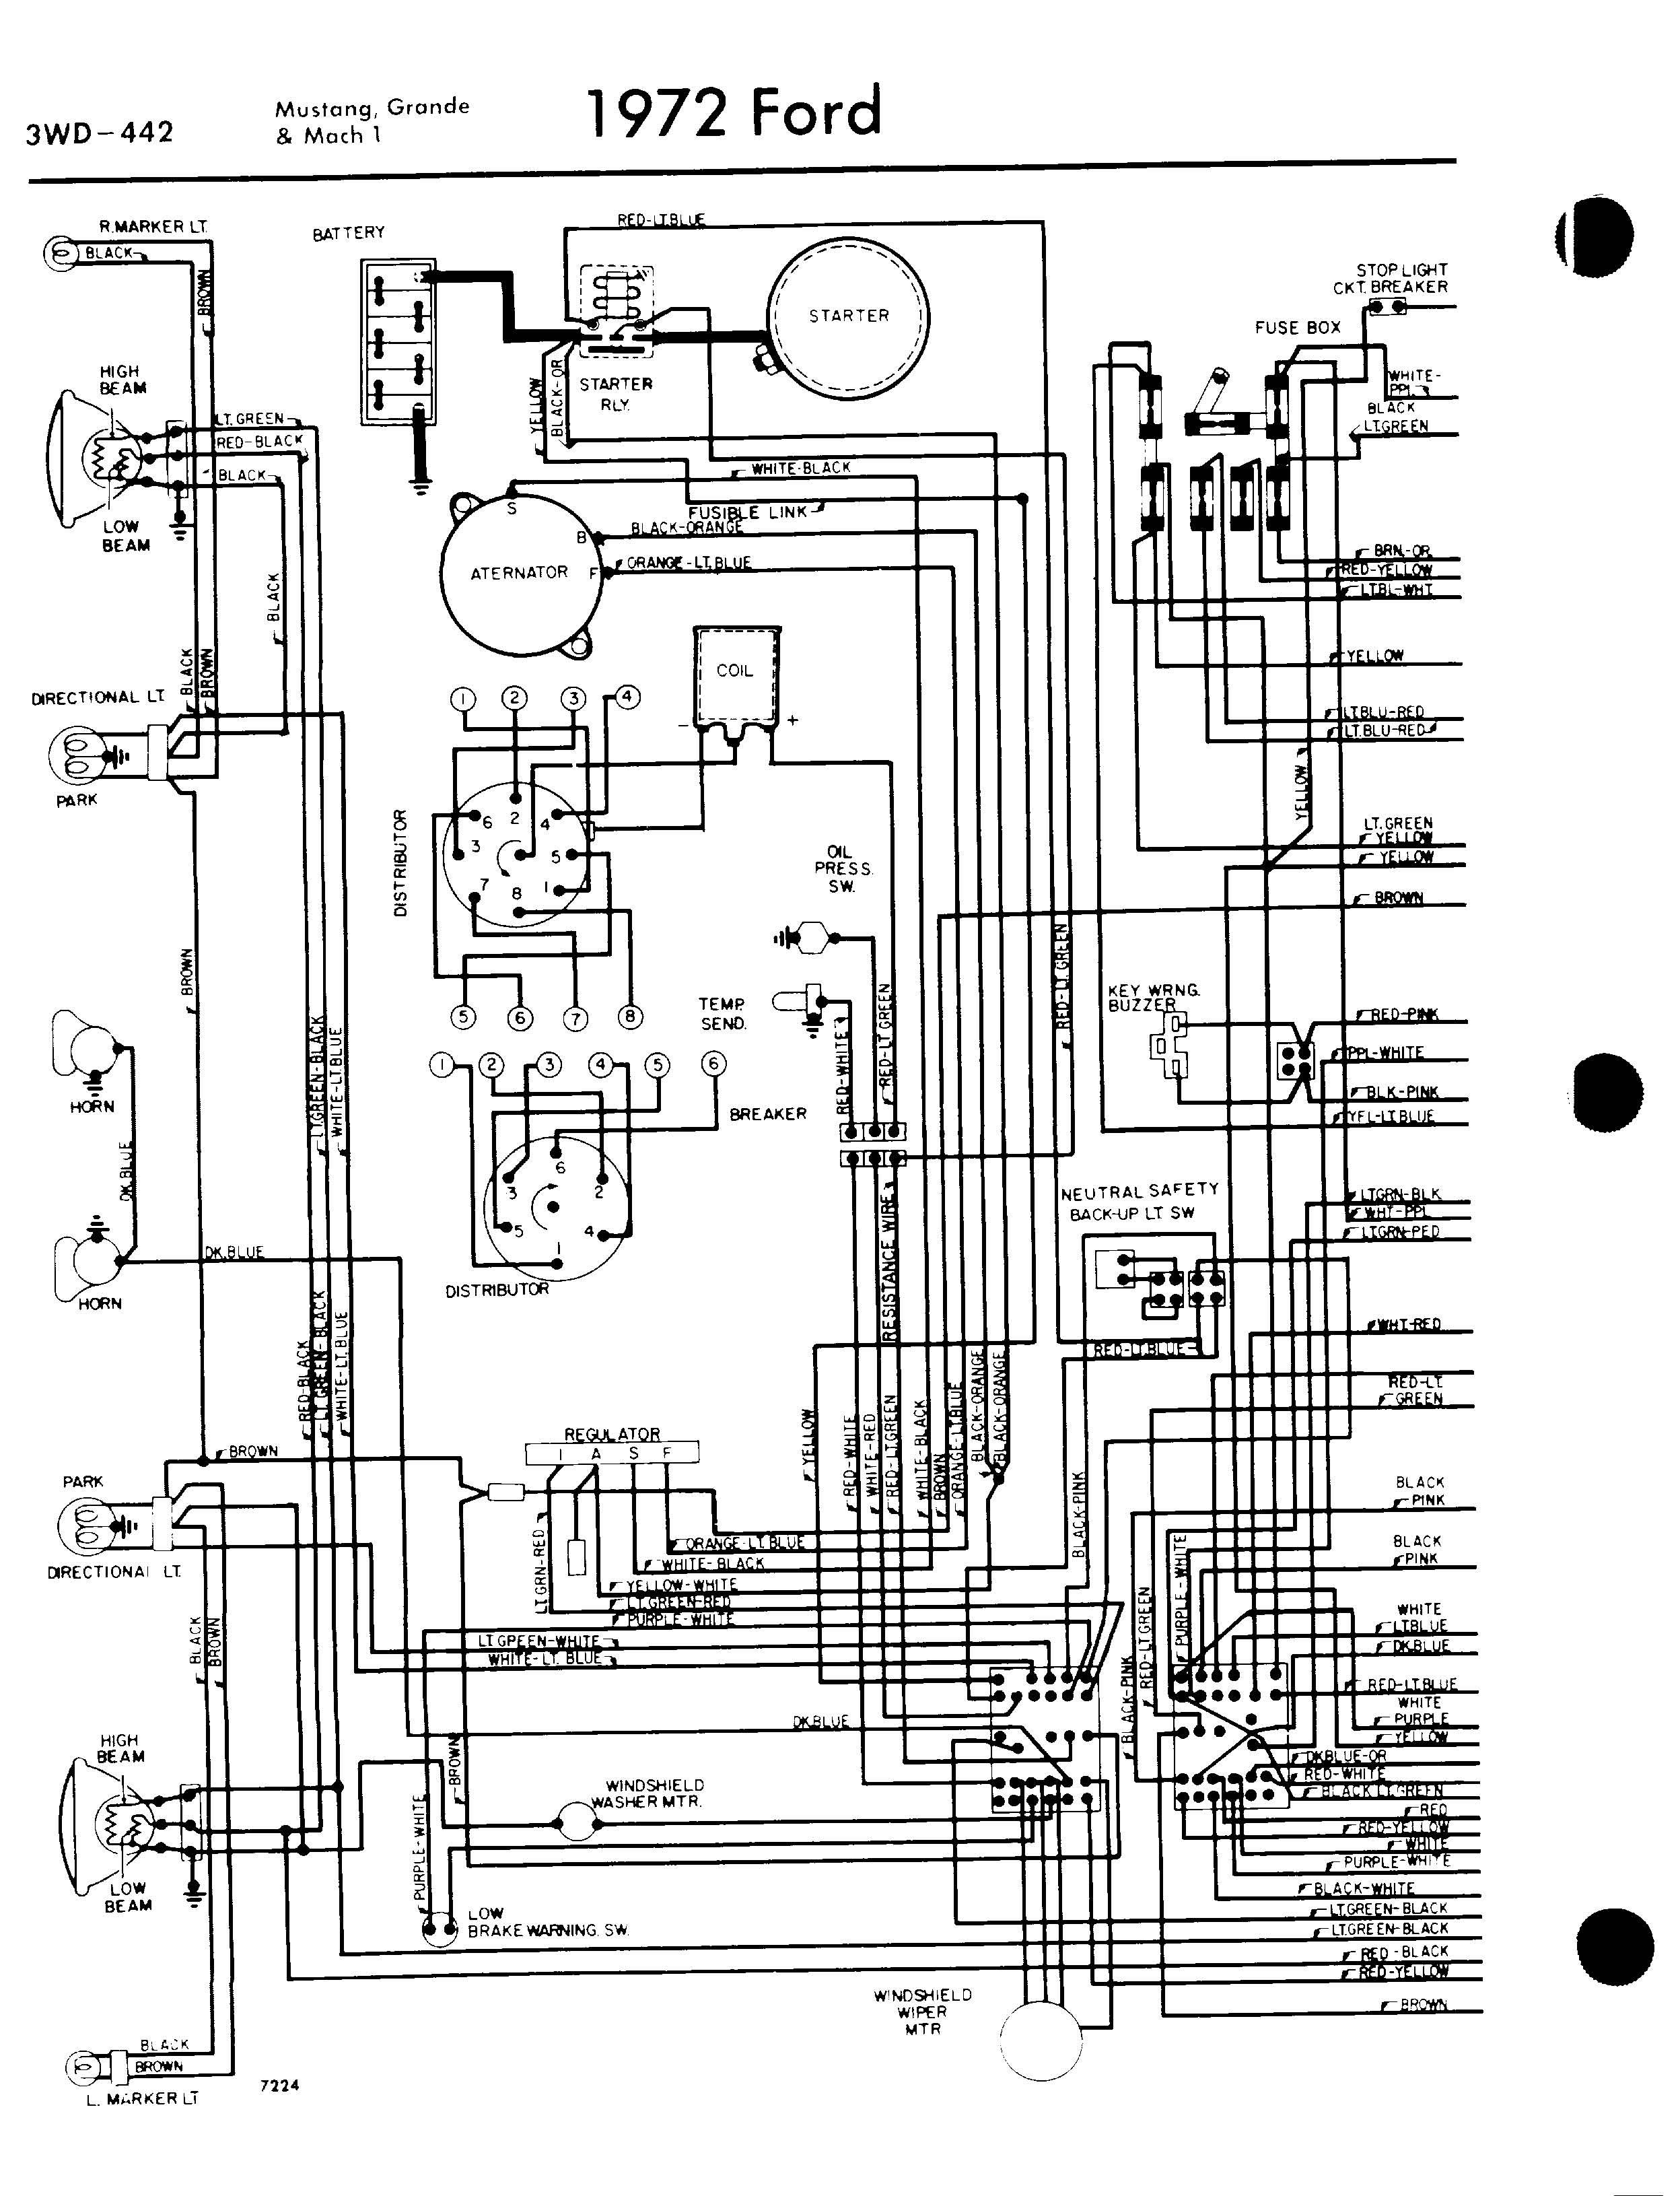 1971 Mustang Ignition Wiring Diagram - Wiring Diagram Data Today on toyota wiring harness, k10 wiring harness, monte carlo wiring harness, b2 wiring harness, k20 wiring harness, el camino wiring harness, gmc truck wiring harness, silverado wiring harness, c3 wiring harness, chevy wiring harness, cavalier wiring harness, mercury wiring harness, hhr wiring harness, dodge wiring harness, nova wiring harness, corvette wiring harness, e2 wiring harness, k1500 wiring harness, c12 wiring harness, camaro wiring harness,